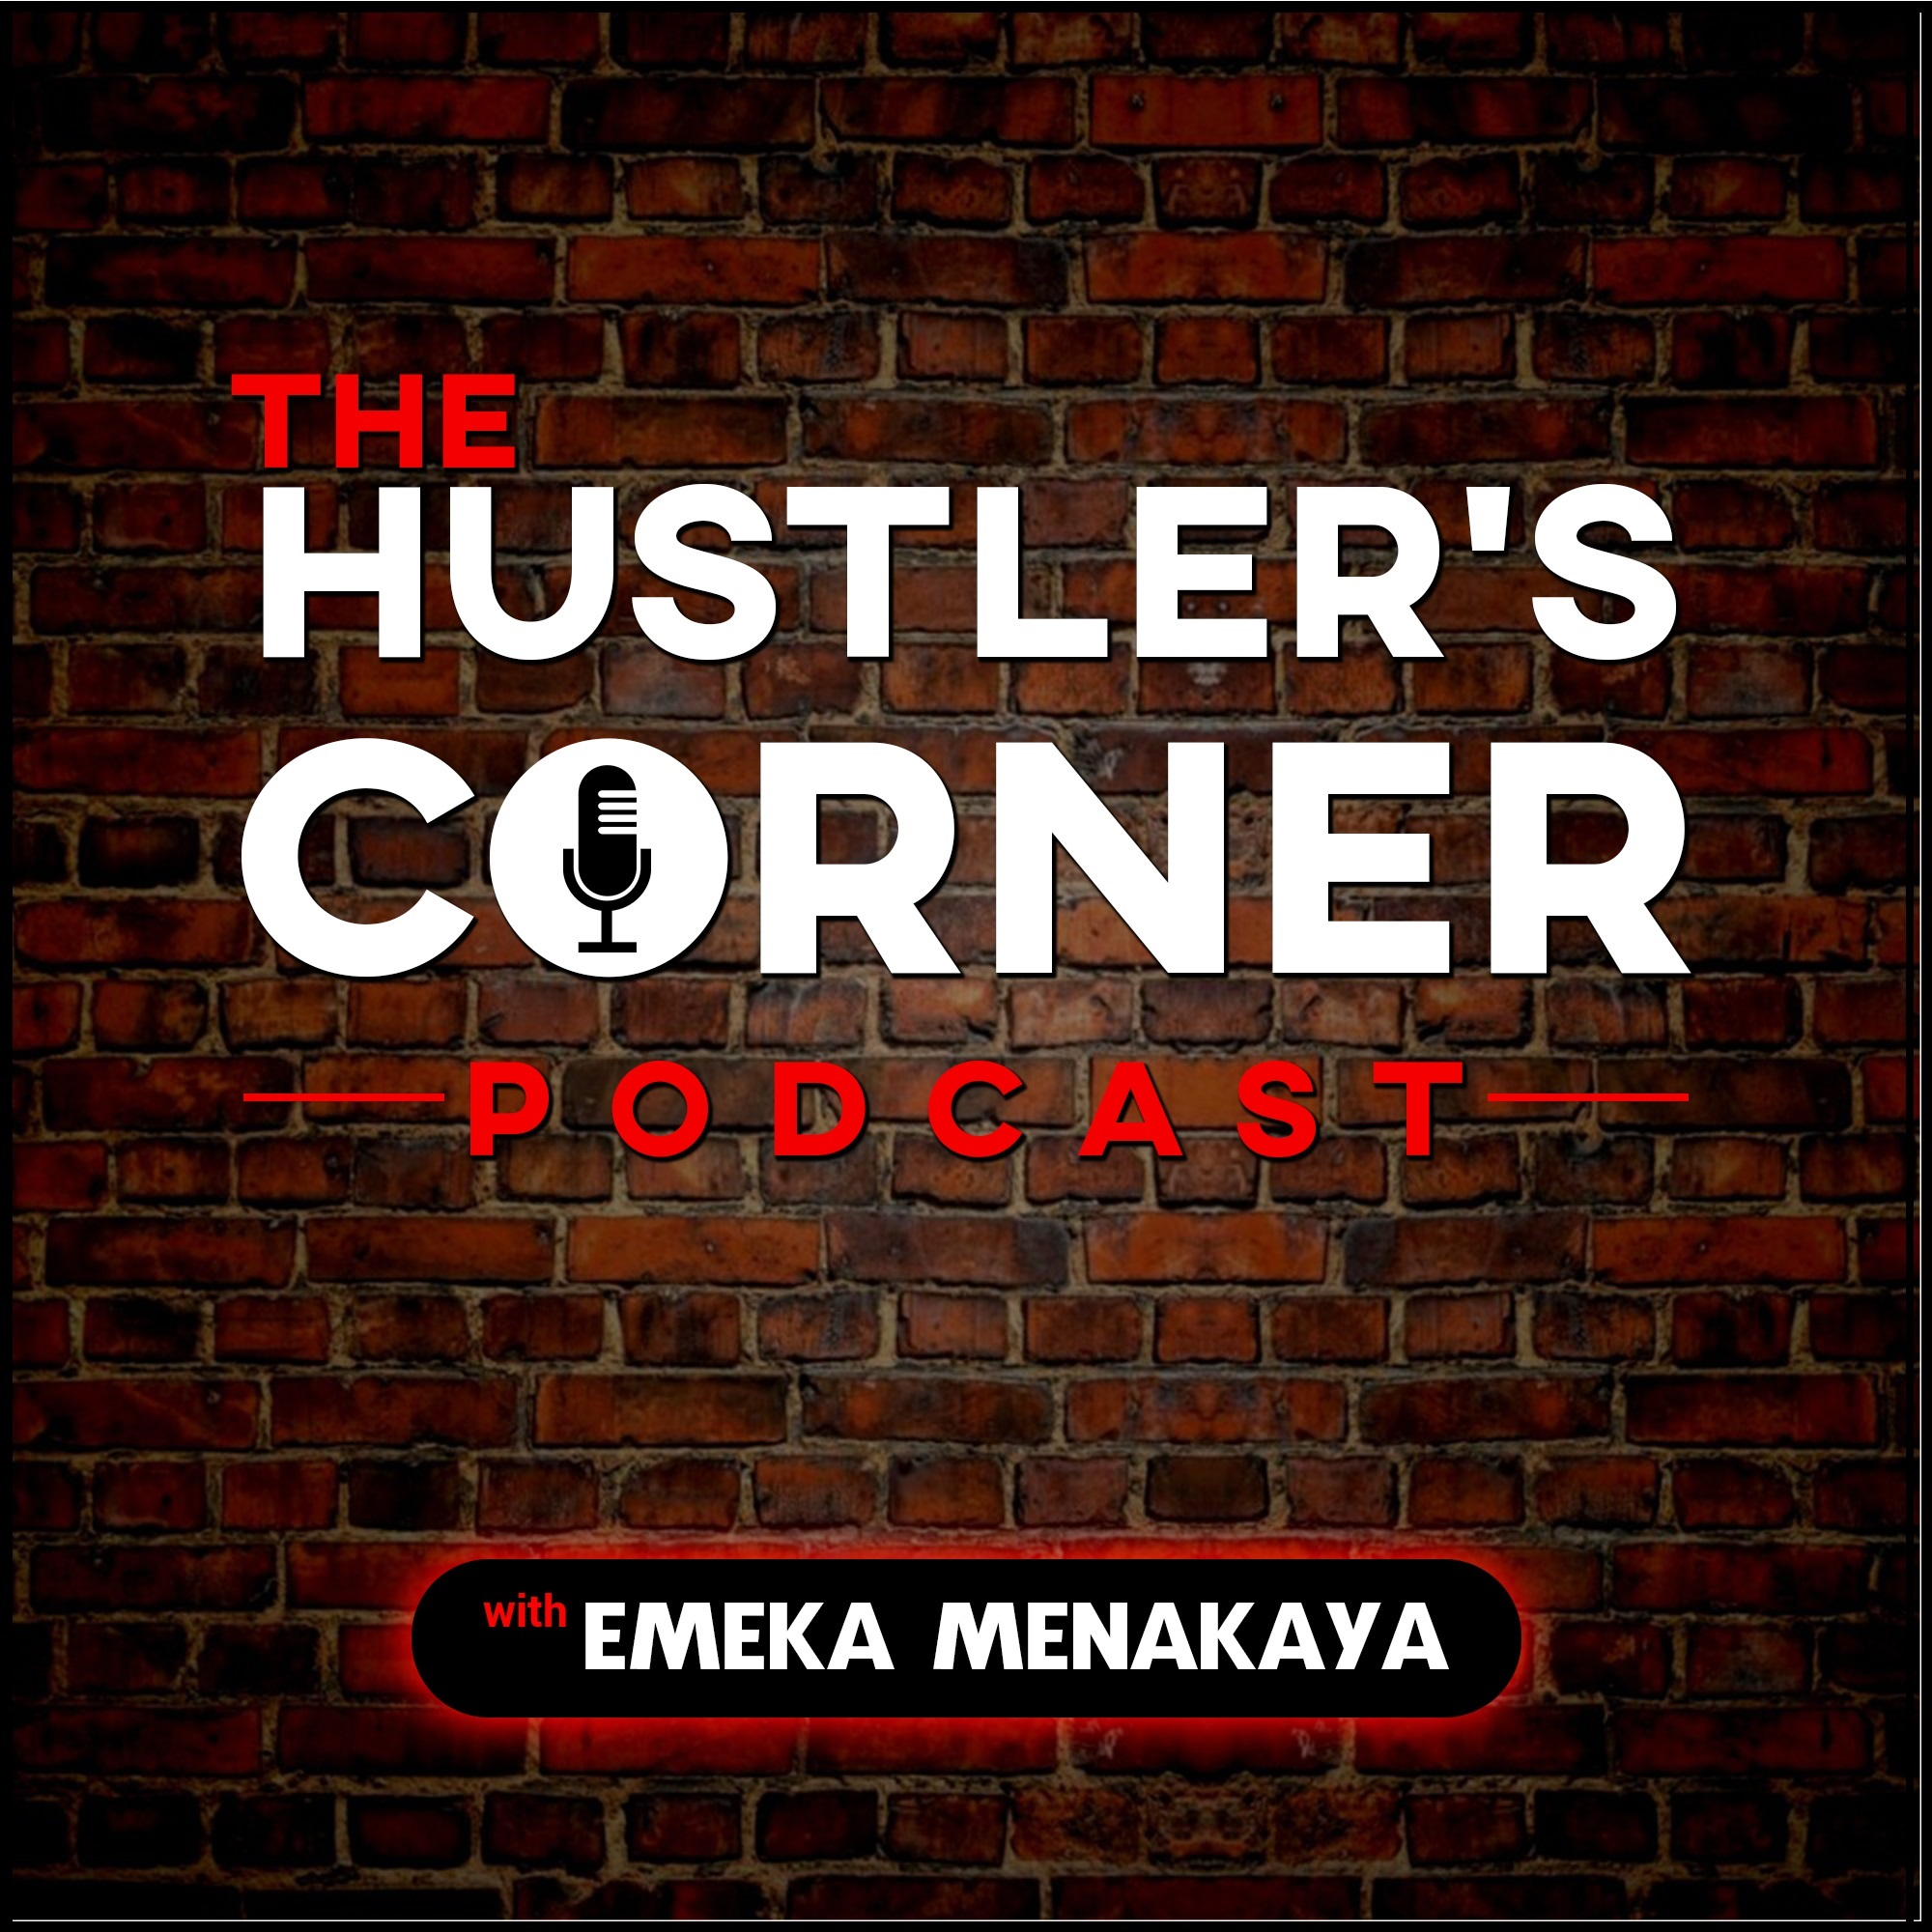 _Podcast_The Hustler s Corner_2_R2